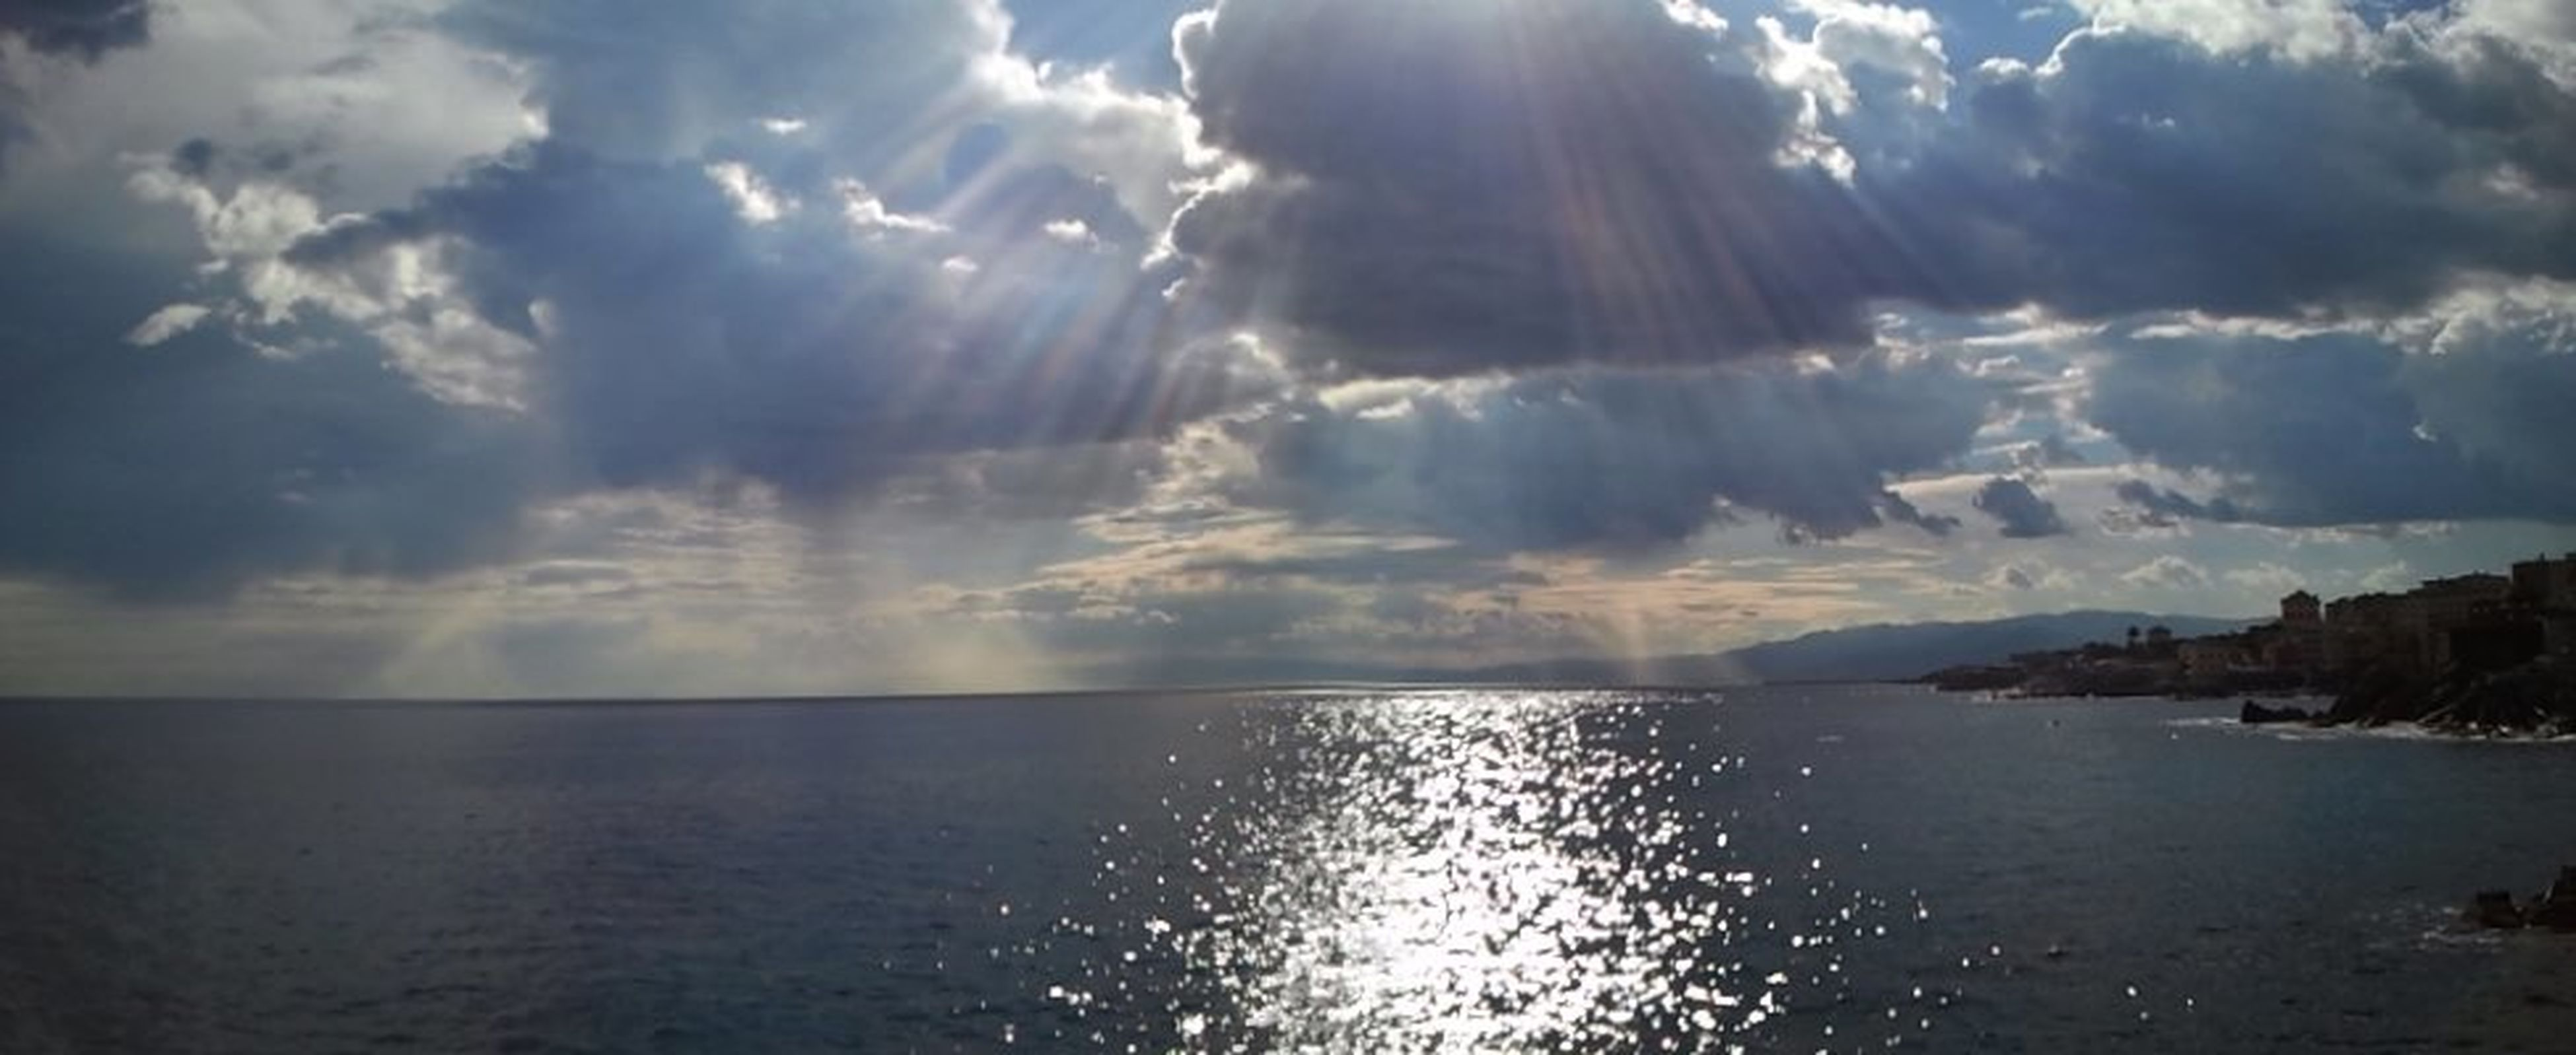 water, sea, sky, scenics, tranquil scene, tranquility, beauty in nature, horizon over water, cloud - sky, waterfront, nature, cloud, reflection, cloudy, idyllic, sunlight, sunset, seascape, sunbeam, outdoors